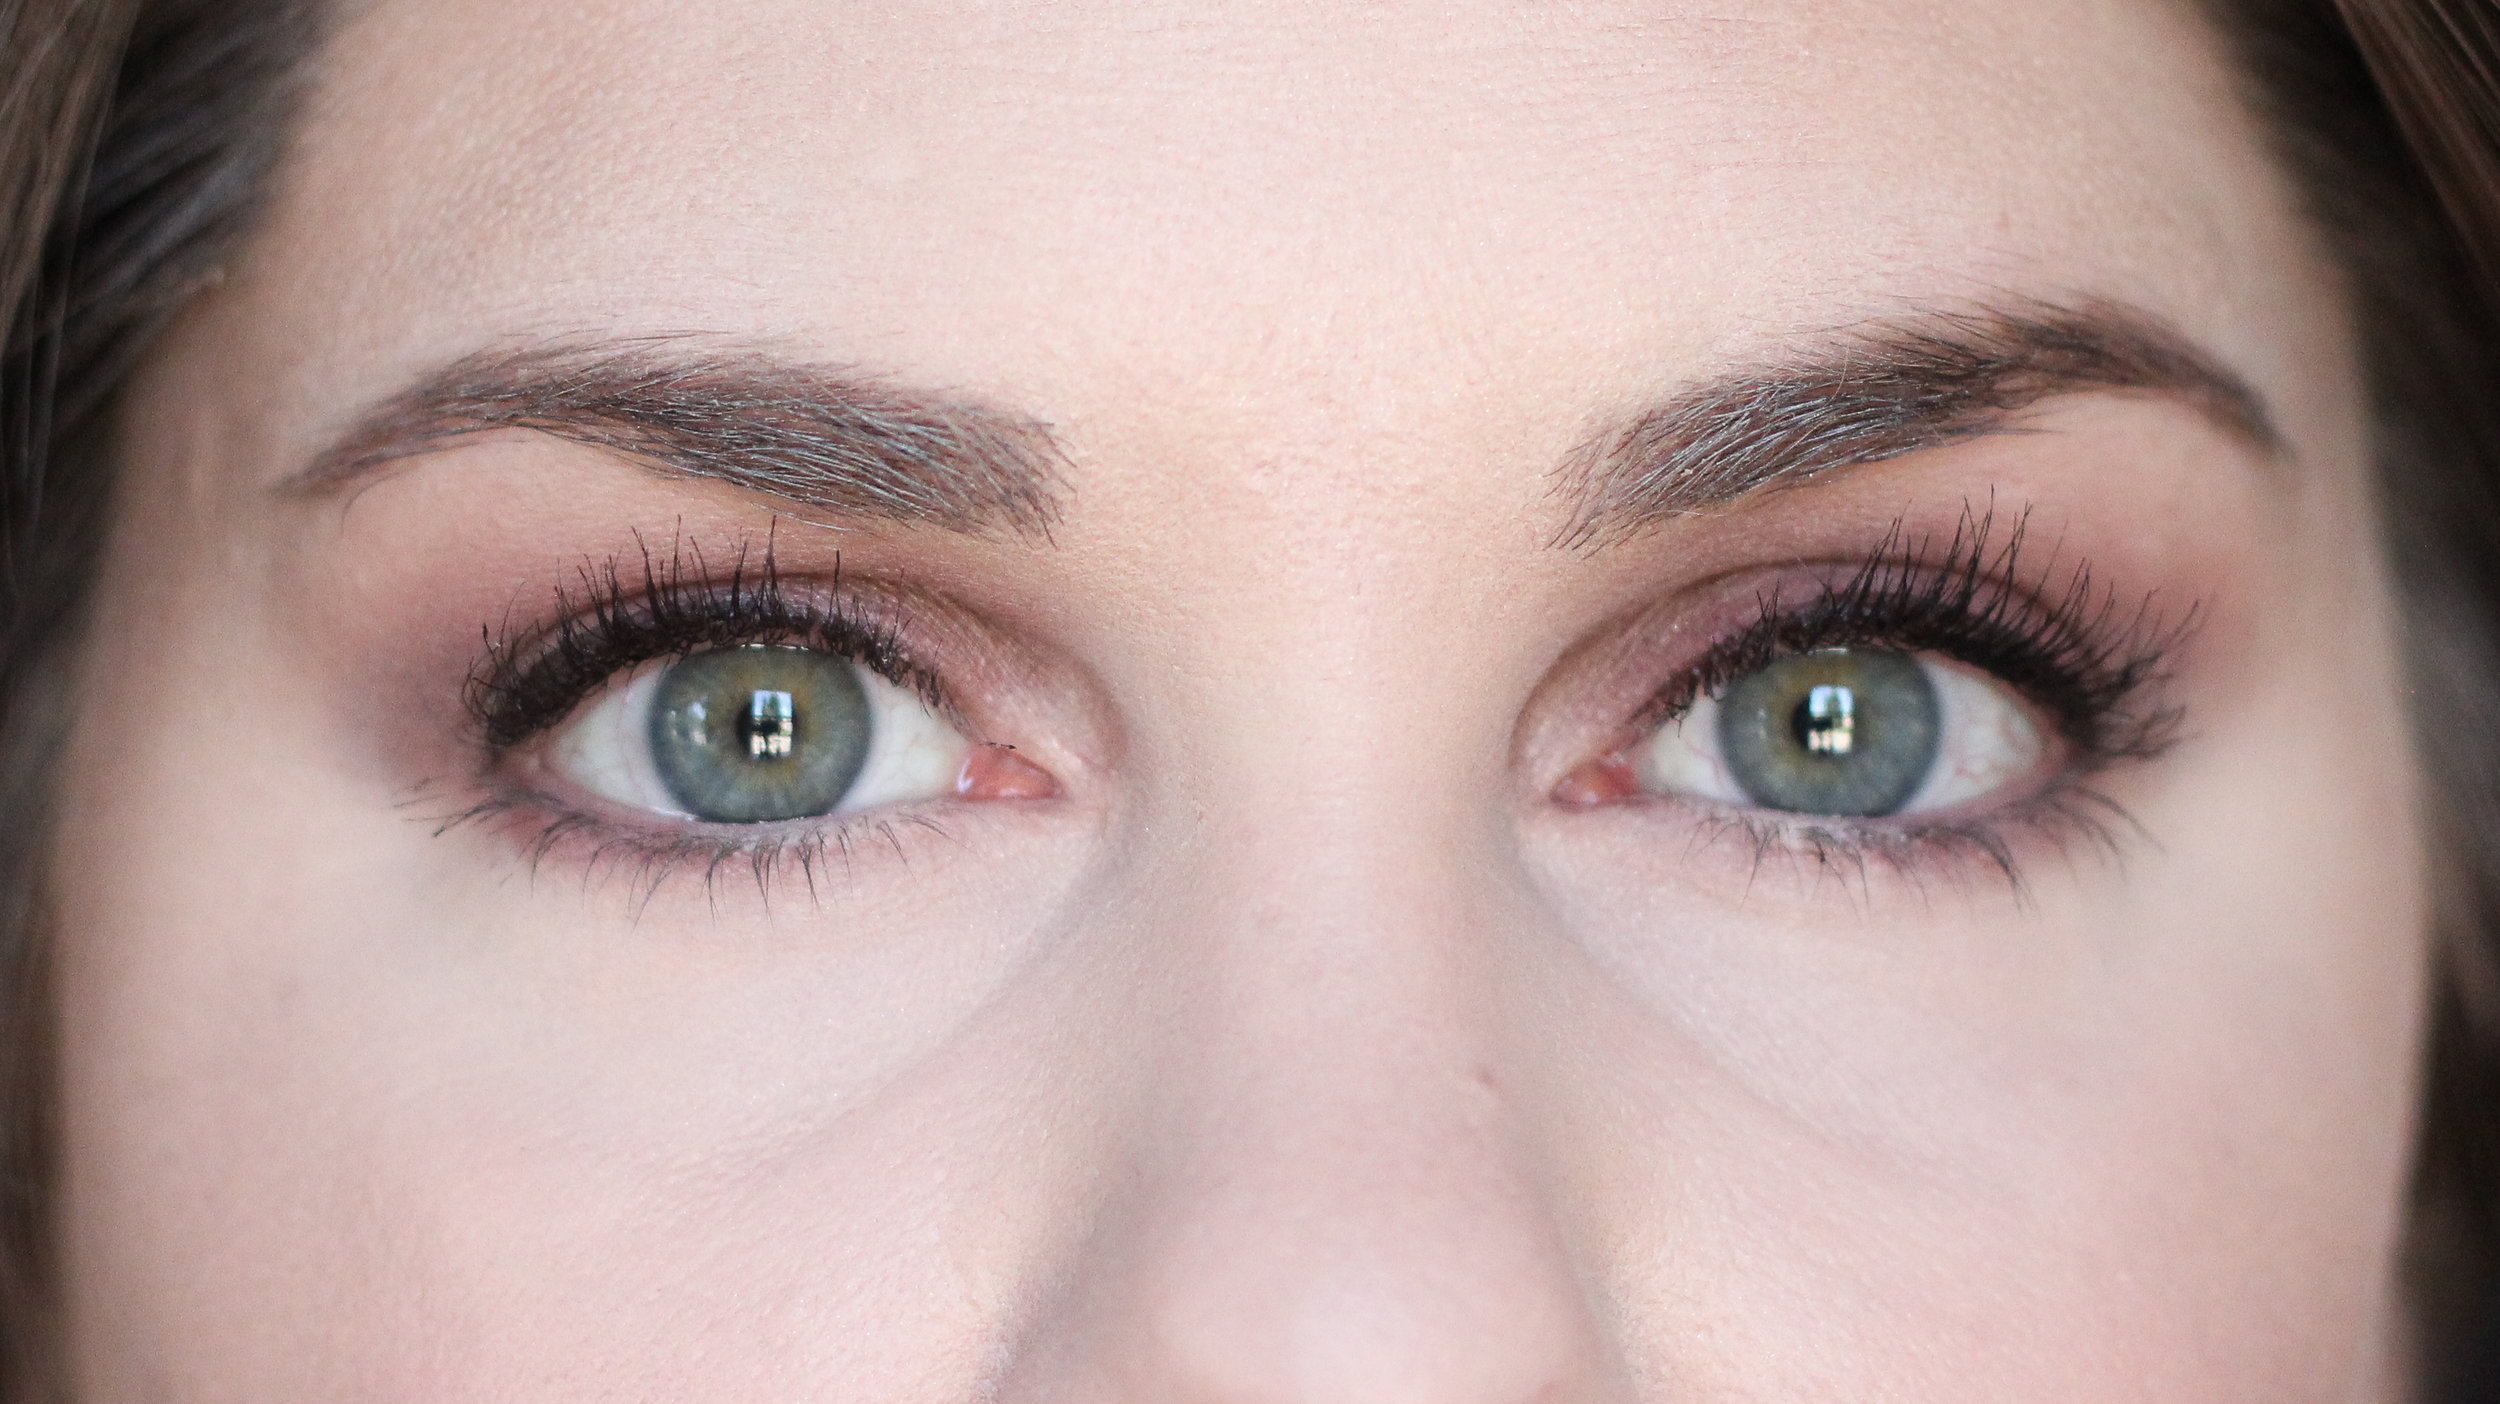 One coat of Givenchy Noir Interdit Mascara. This is about 10-12 swipes per eye. (Top lashes only.)